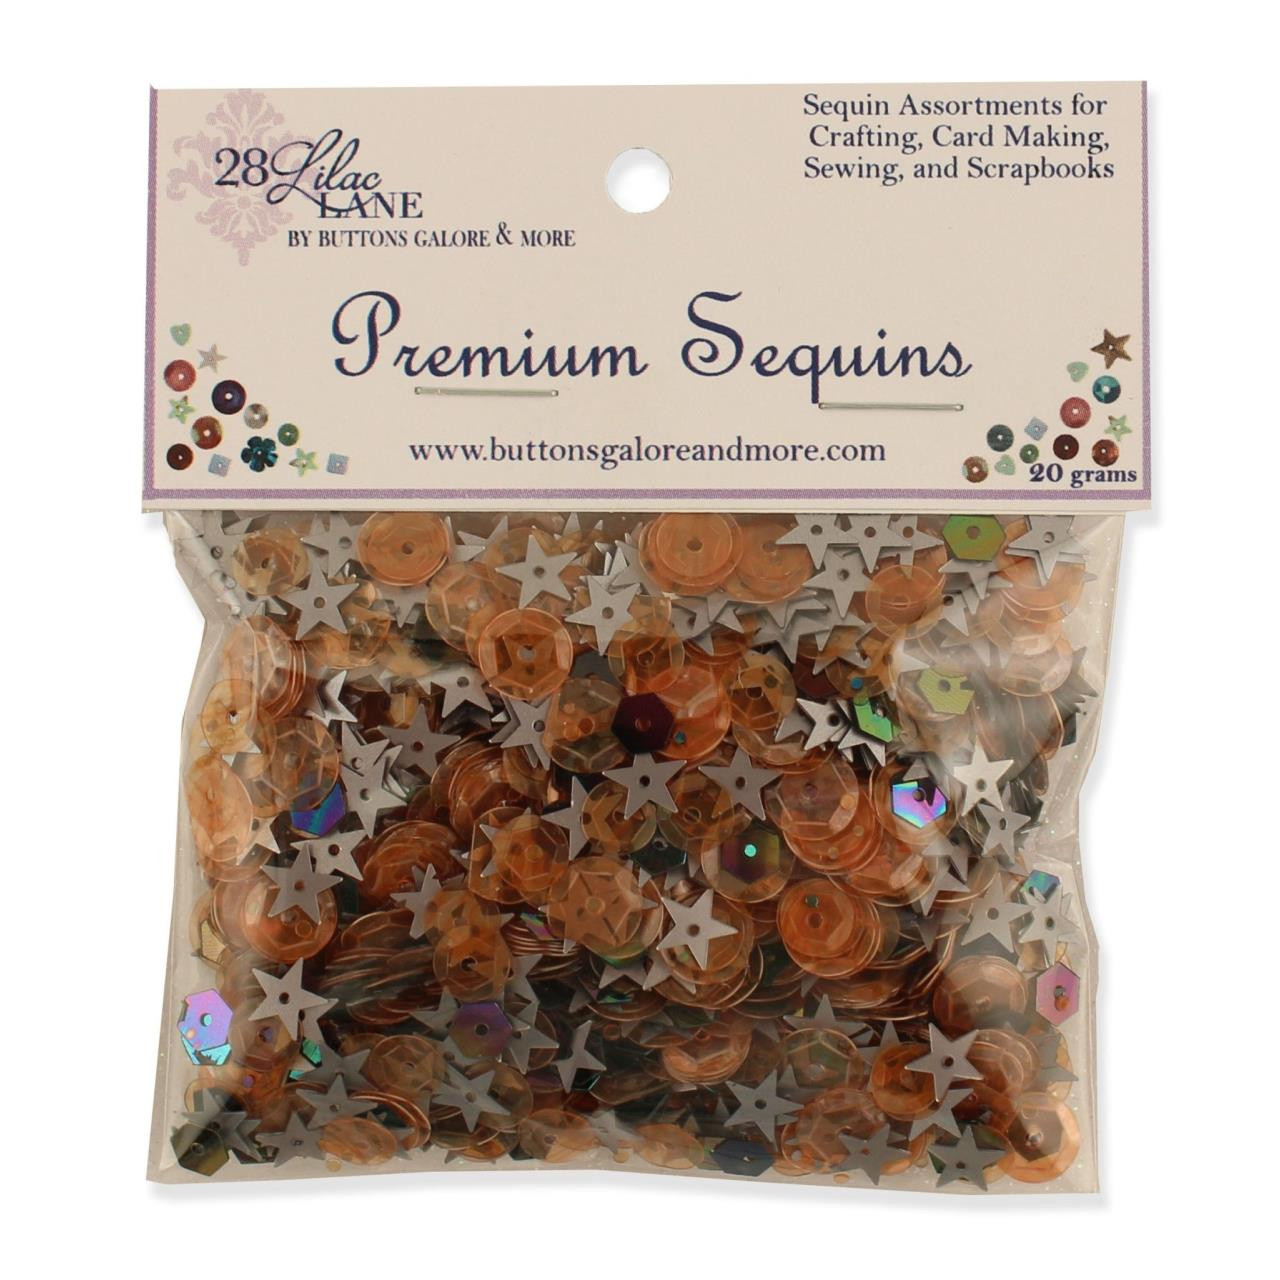 Witches Brew by 28 Lilac Lane, Buttons Galore Sequins -